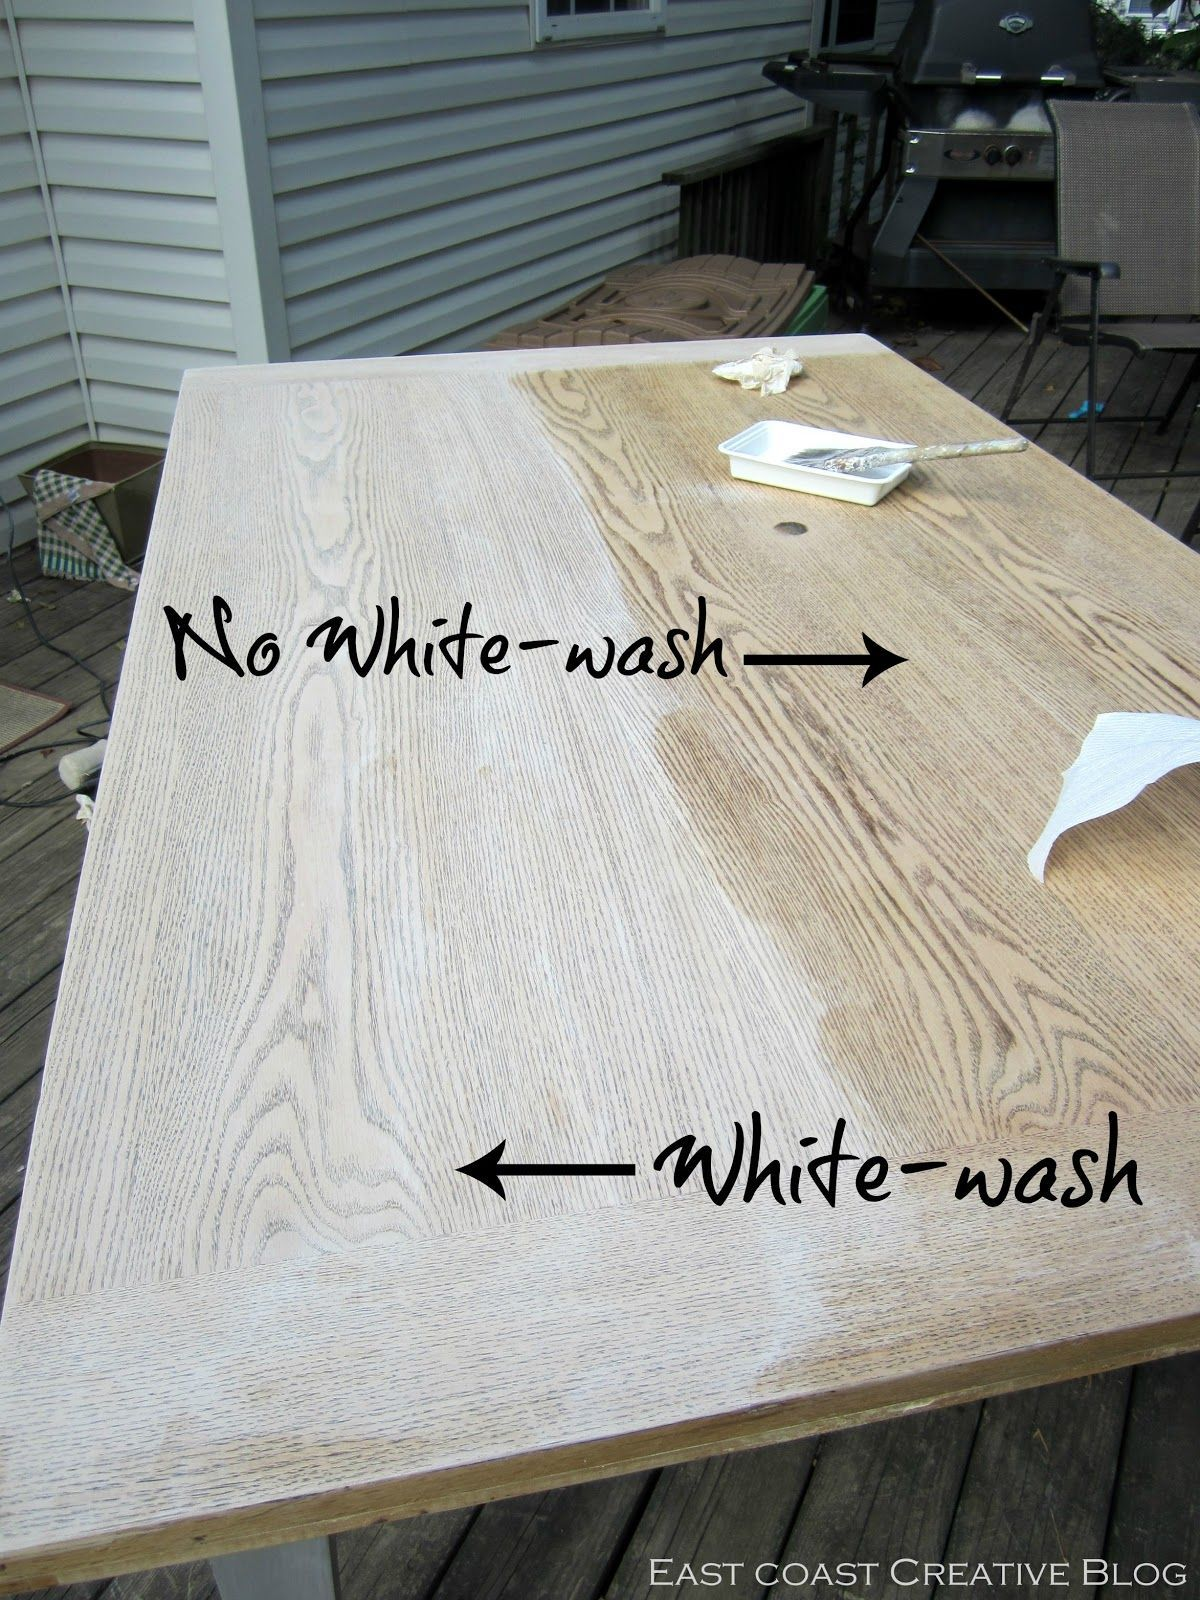 Refinished Dining Room Table Furniture Makeover#dining #furniture #makeover  #refinished #room… in 2020 | Pine furniture makeover, White washed furniture,  Furniture makeover